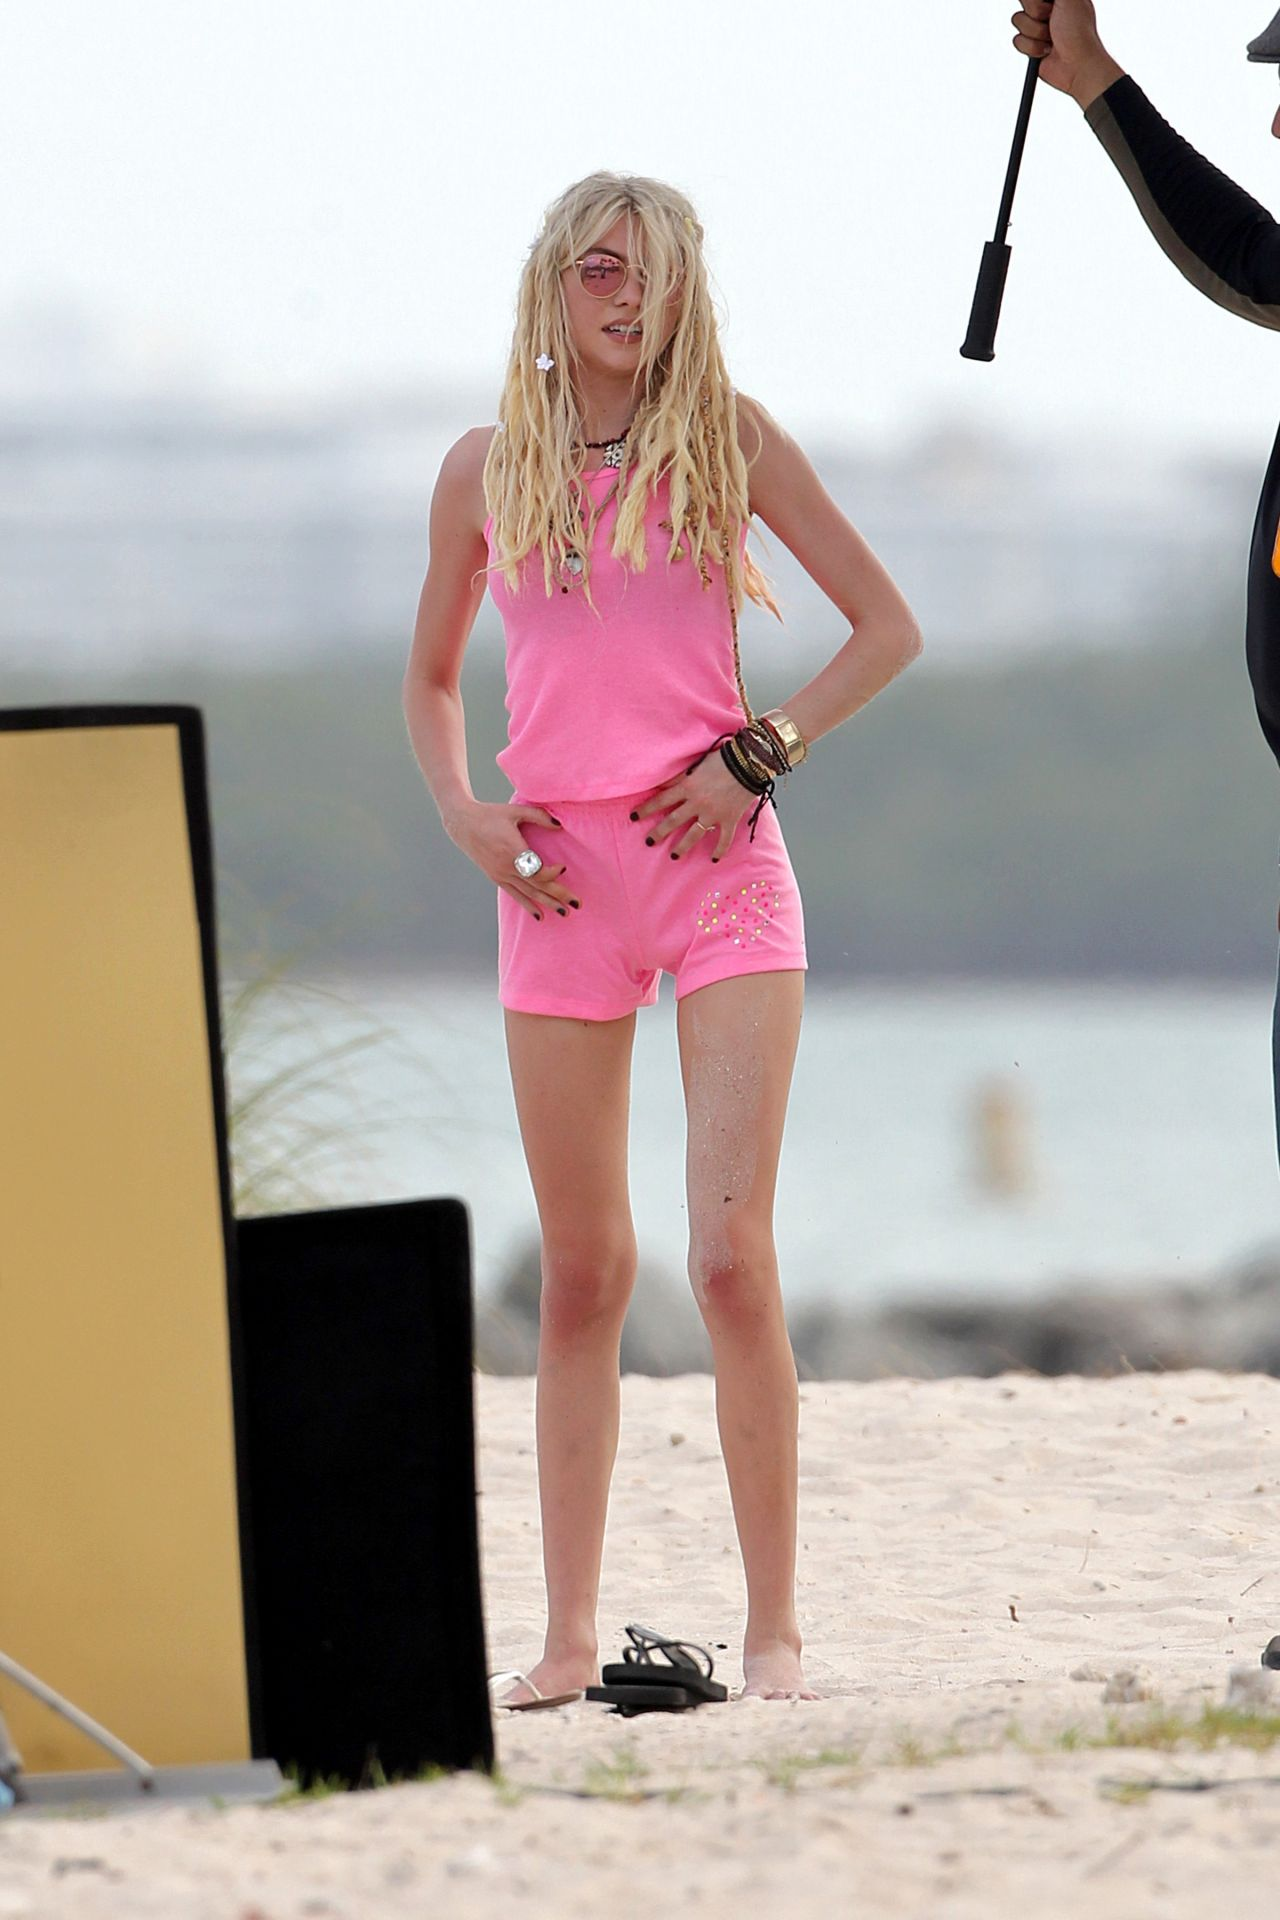 Taylor Momsen At The Beach New Music Video Set Photos